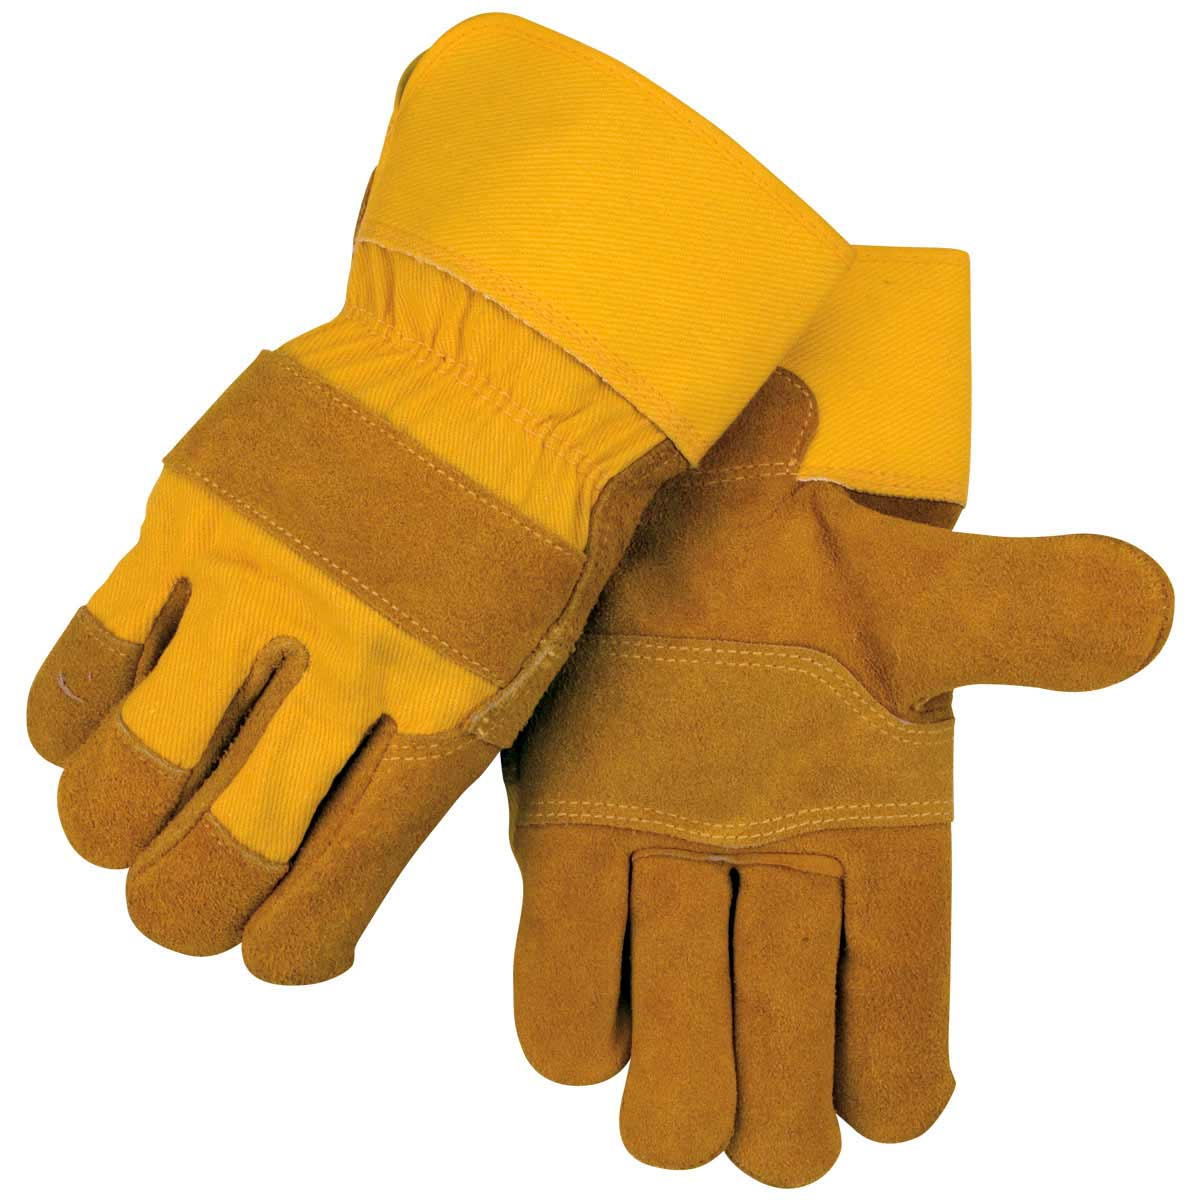 SIDE SPLIT COWHIDE - PATCHED PALM SPECIALTY LEATHER PALM WORK GLOVES. Pack 12. Large. 5Y